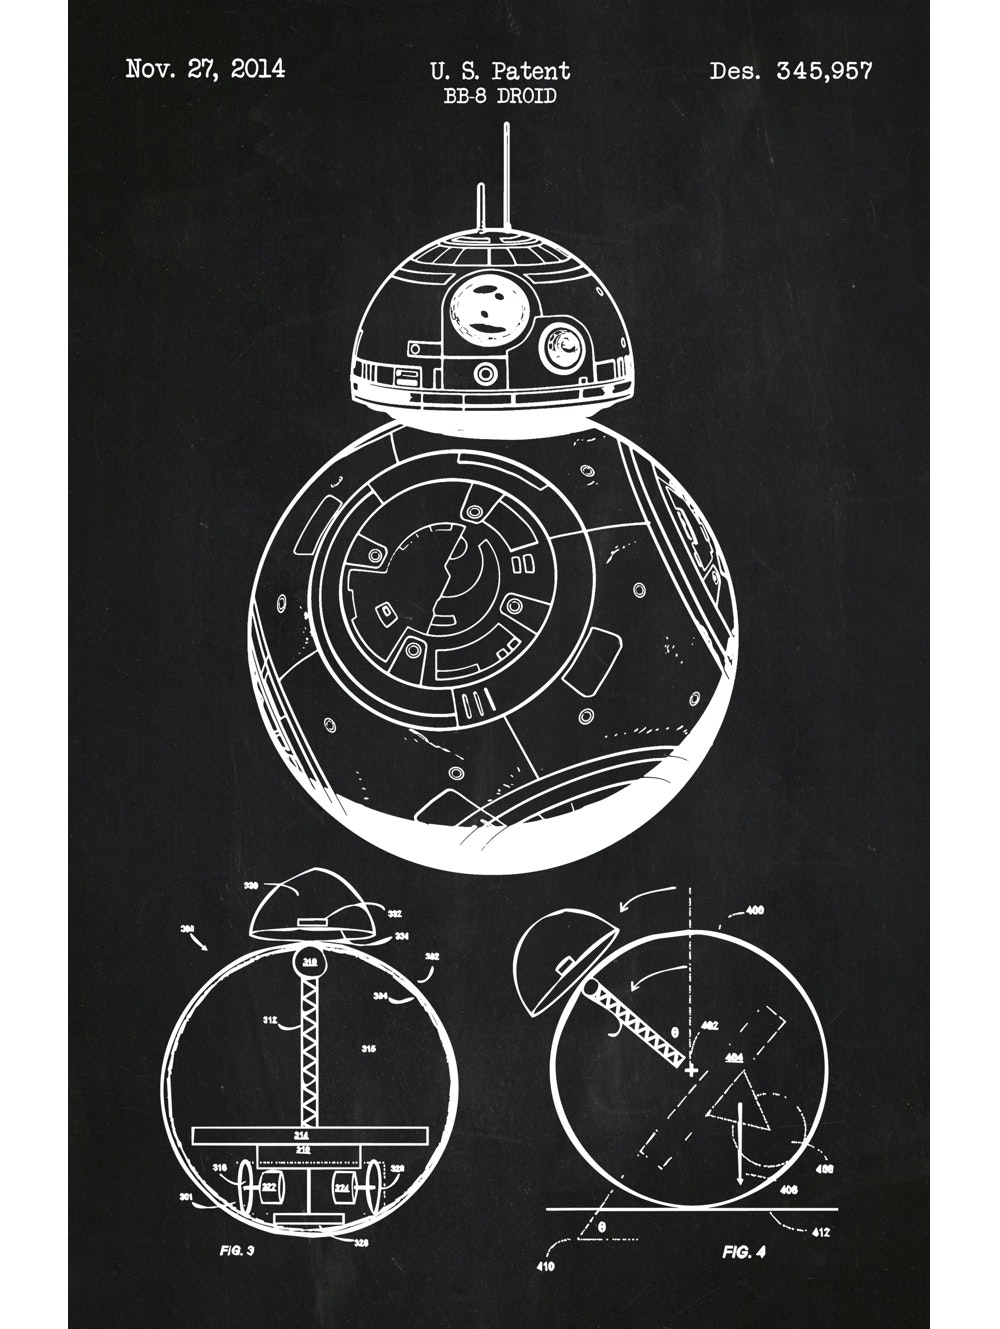 Star Wars - BB-8 Droid